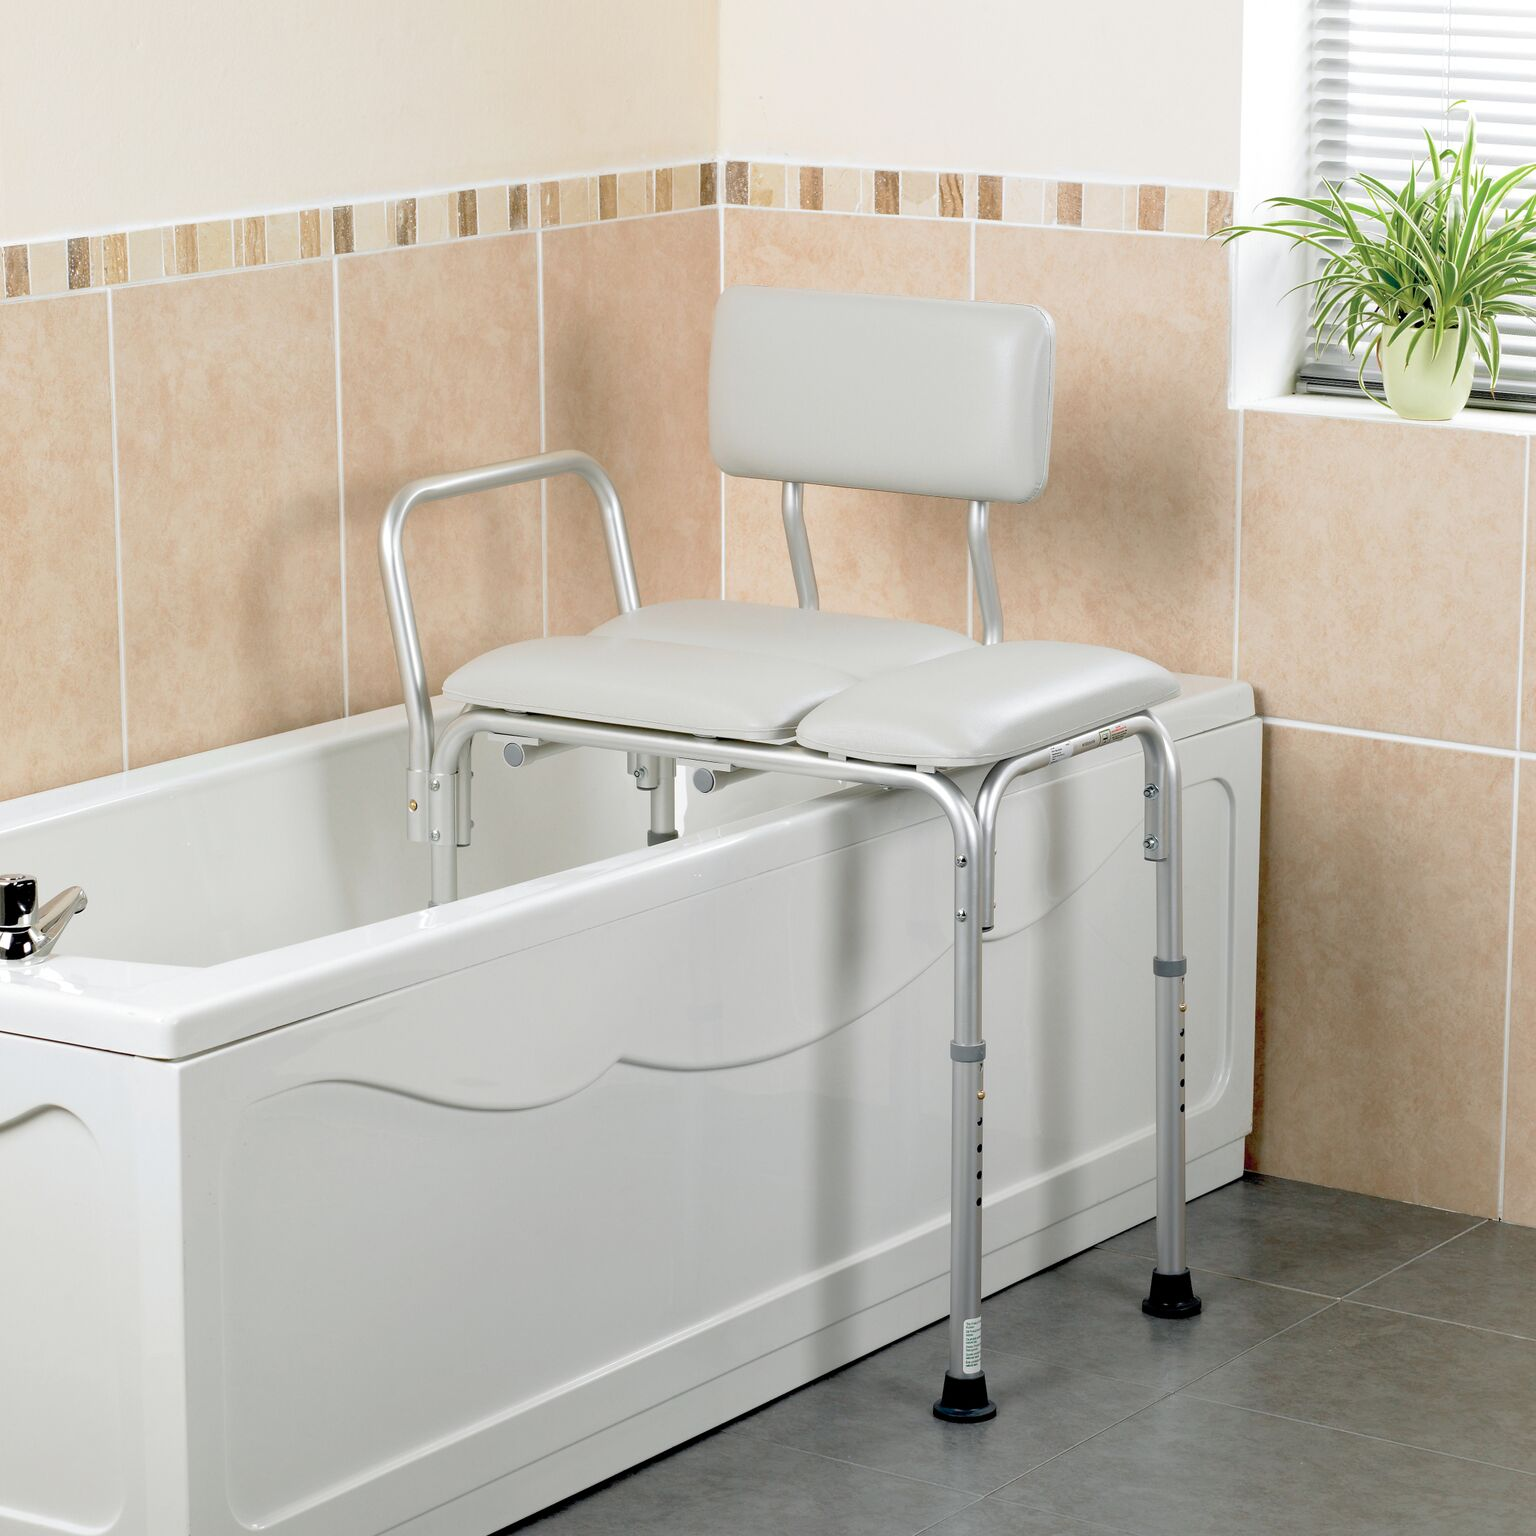 Homecraft Transfer Bath Bench – Buy Online – Liftability ...